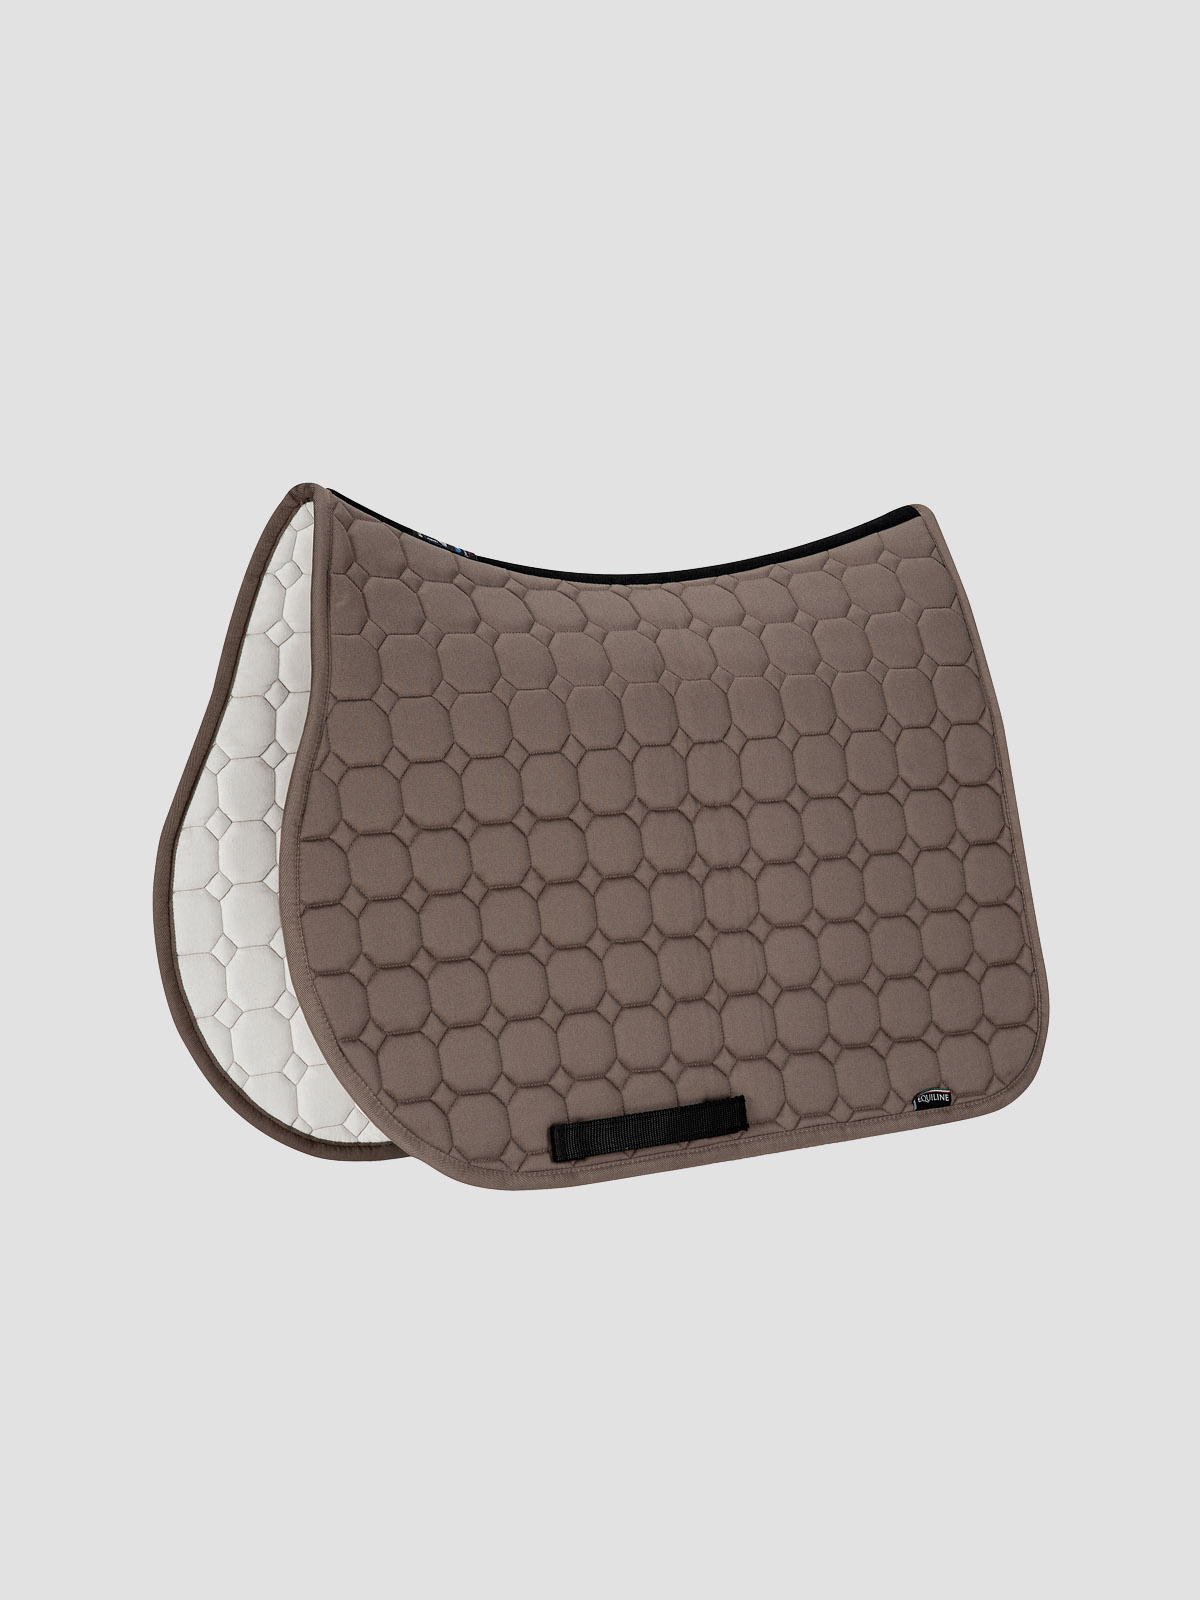 Octagon Saddle Pad 2